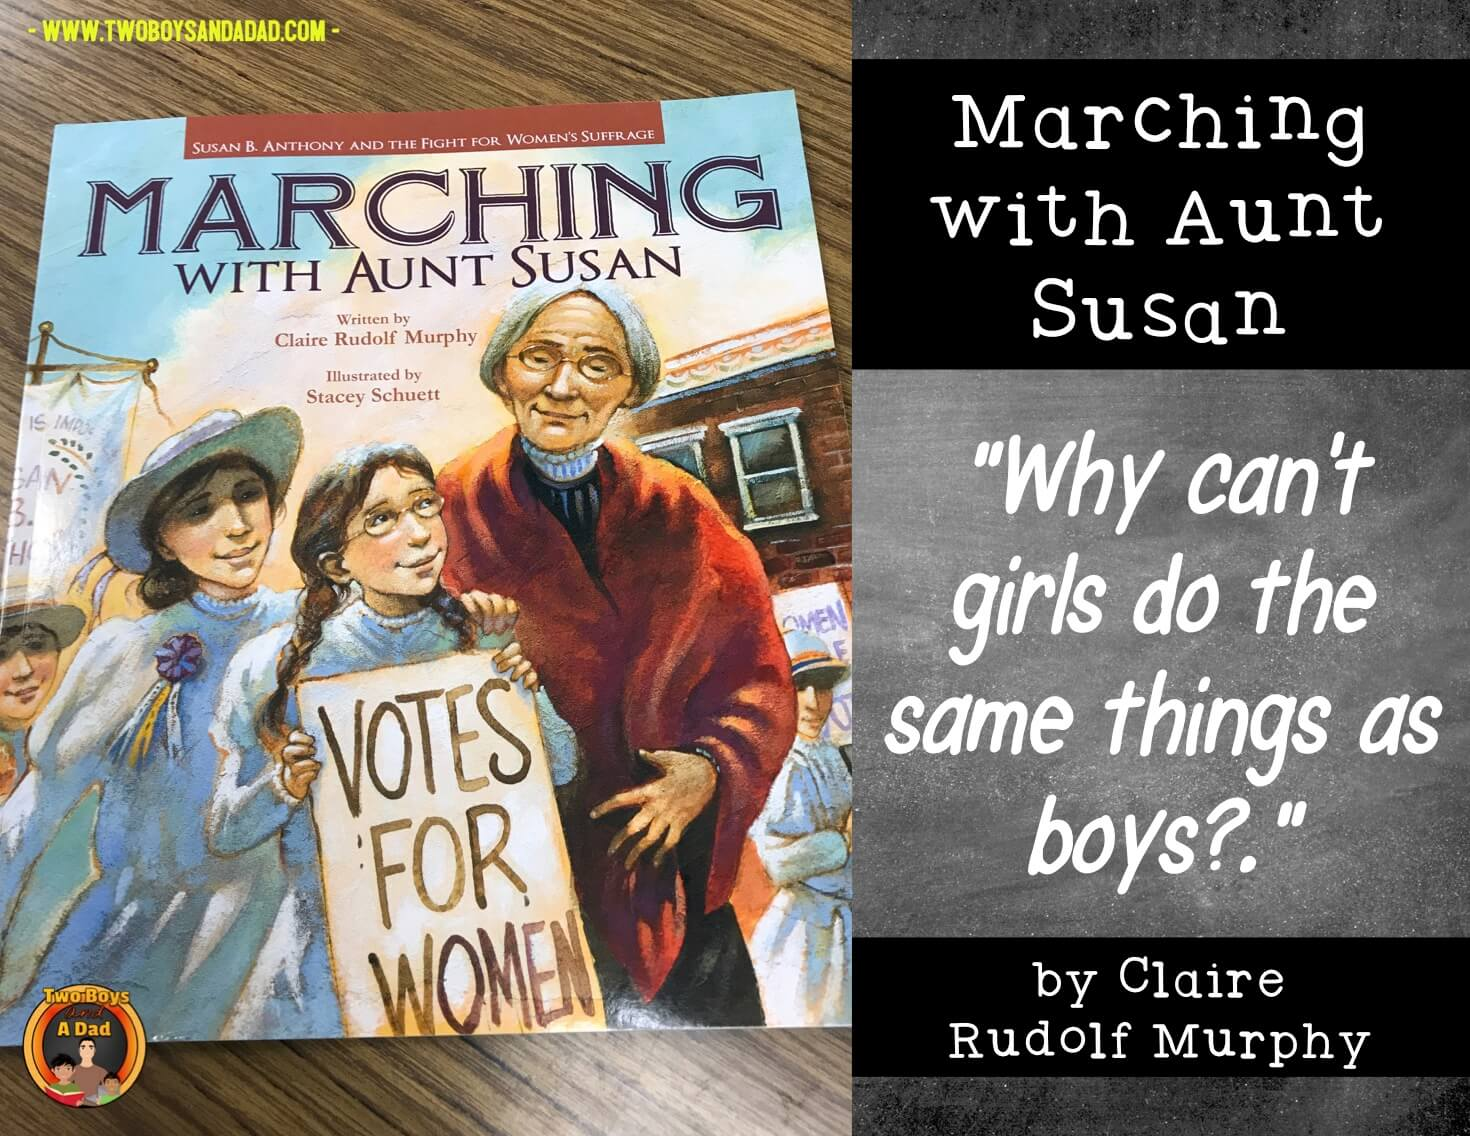 Marching with Susan B. Anthony